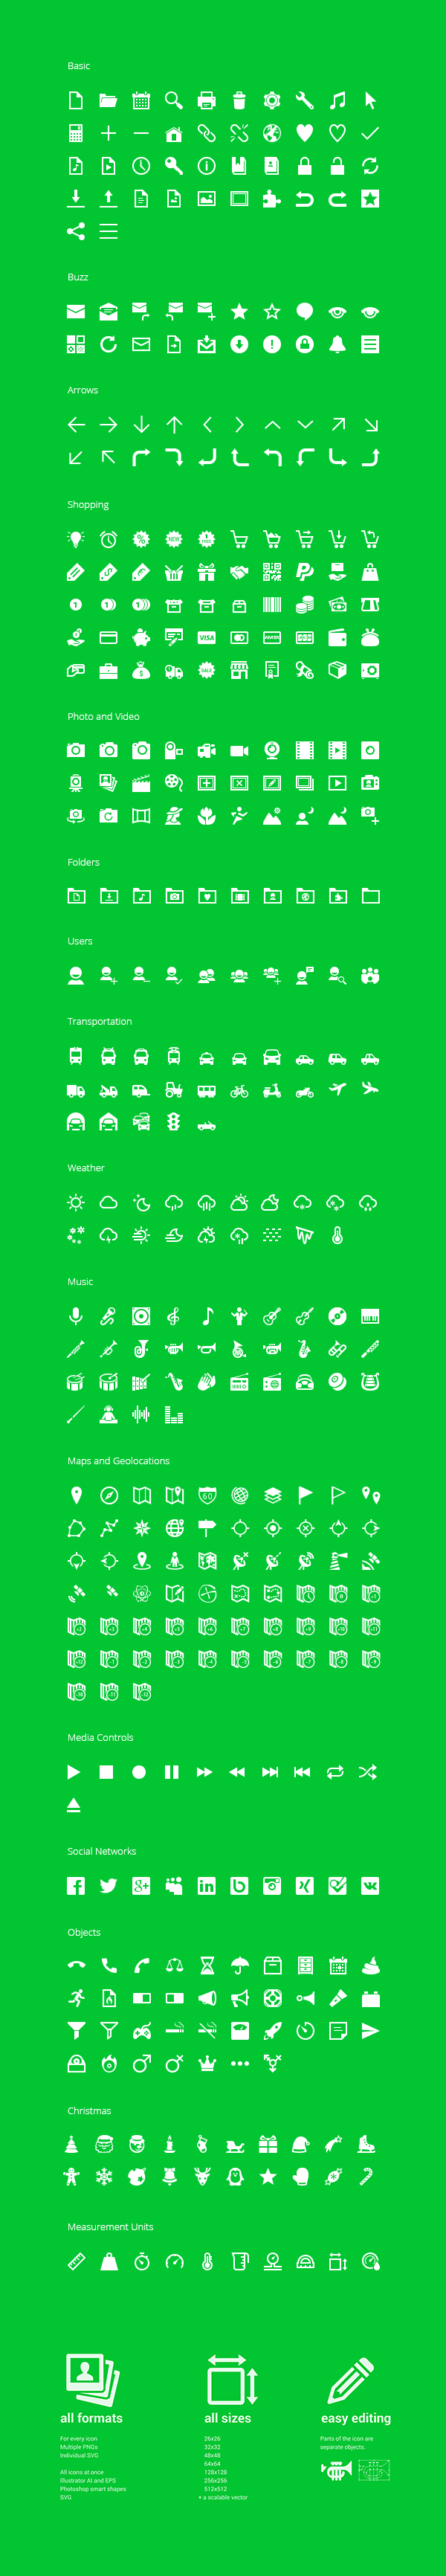 350 free android icons graphicburger